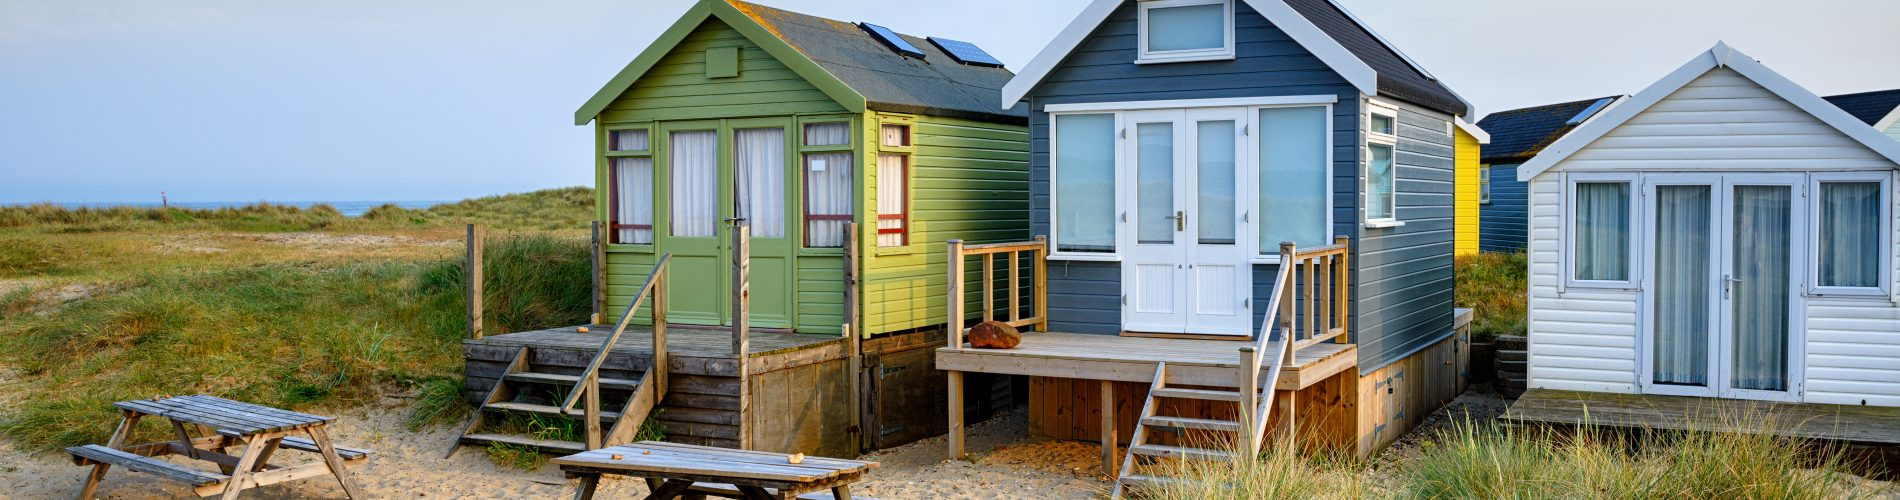 Beach huts on Mudeford Spit a narrow strip of sand between Hengistbury head and Mudeford at Christchurch in Dorset